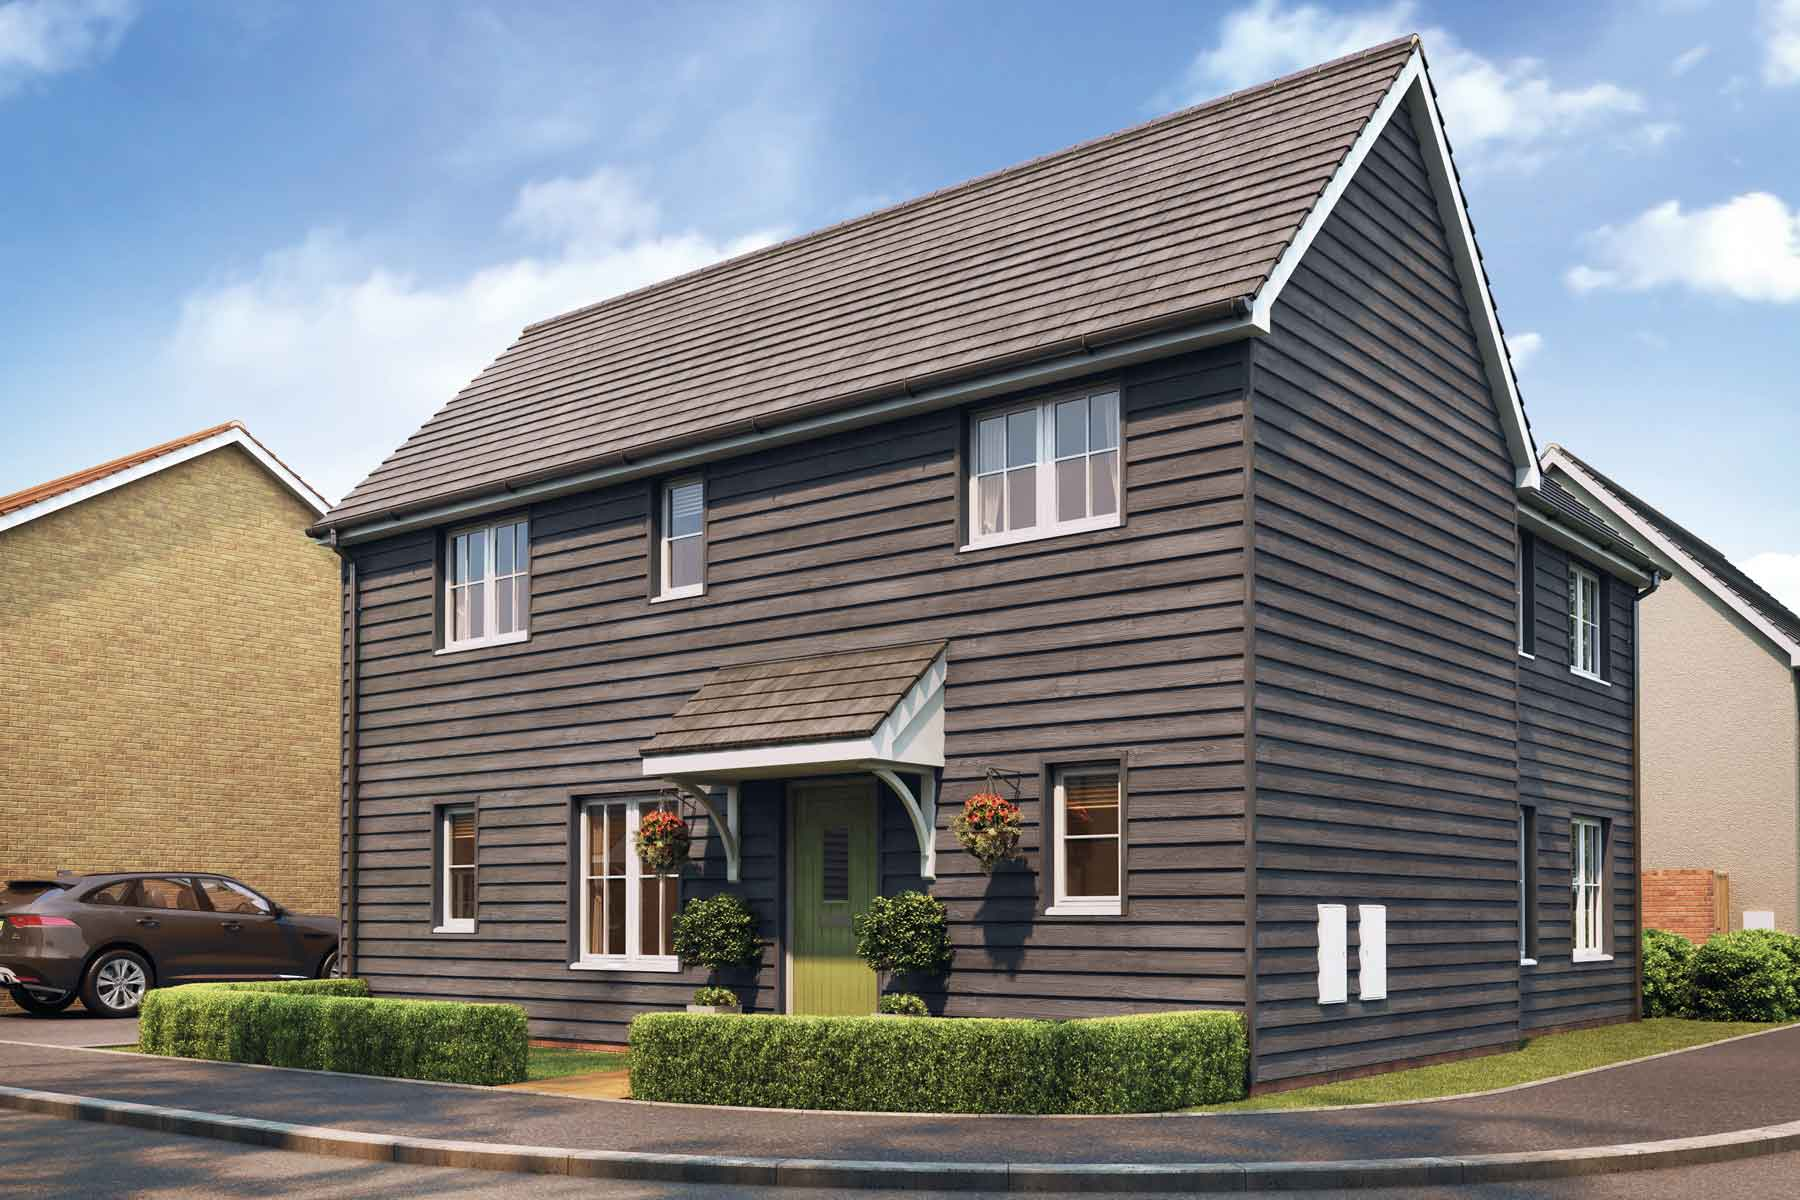 Artist impression of The Tildale, Hamford Park Walton on the Naze